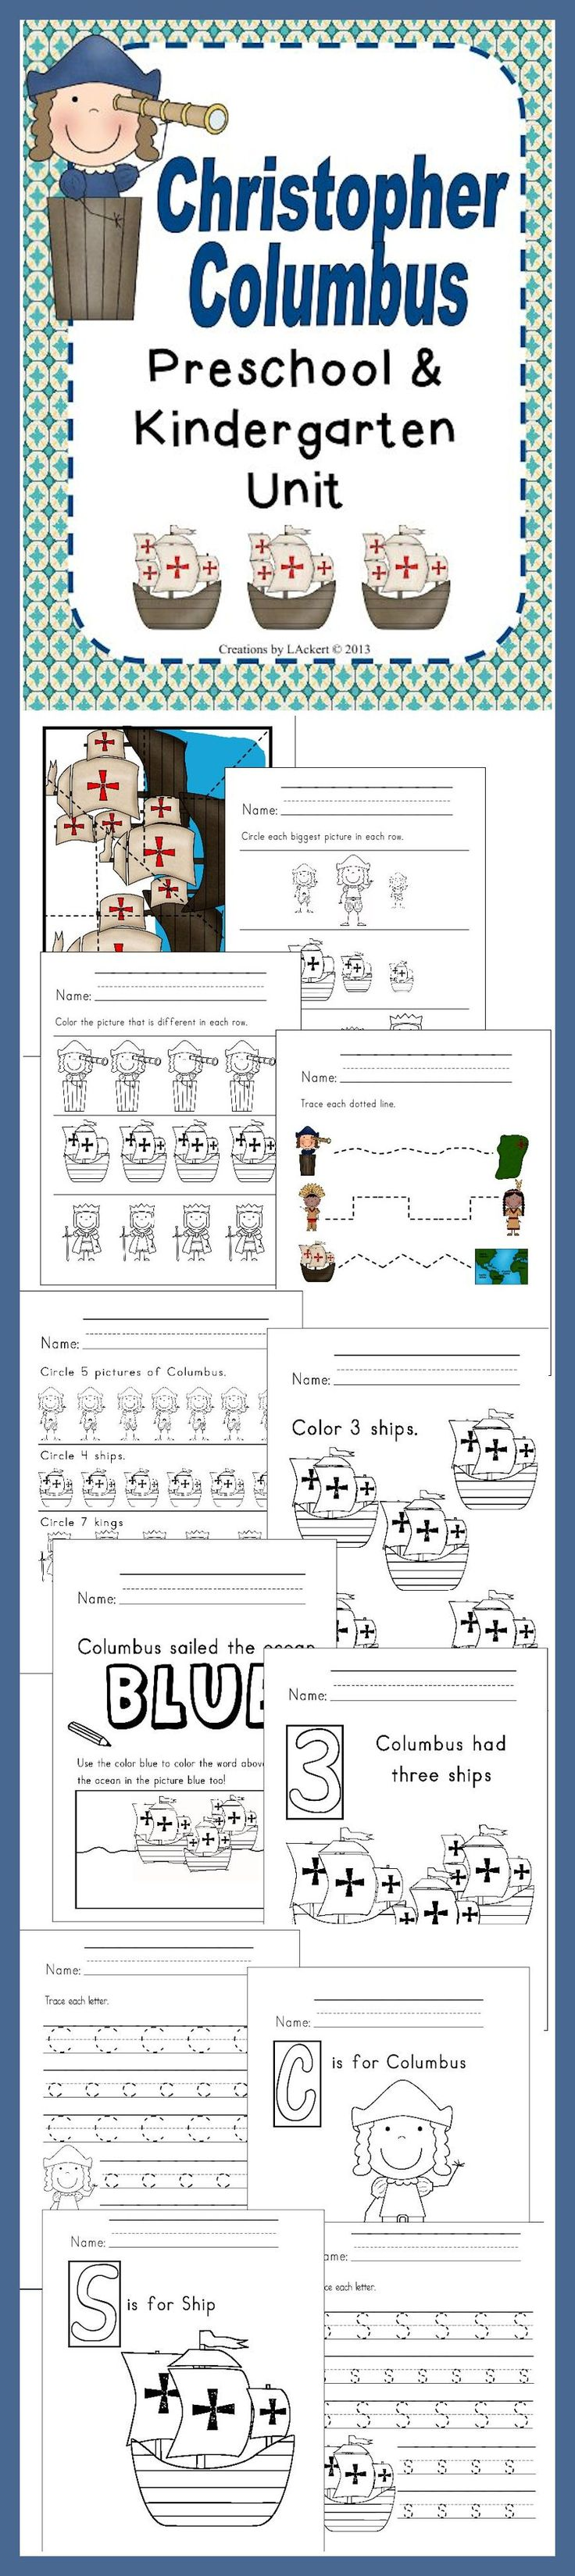 Free Worksheet Christopher Columbus Worksheets 17 best ideas about christopher columbus on pinterest kindergarten unit that includes different worksheets and activities httpwww